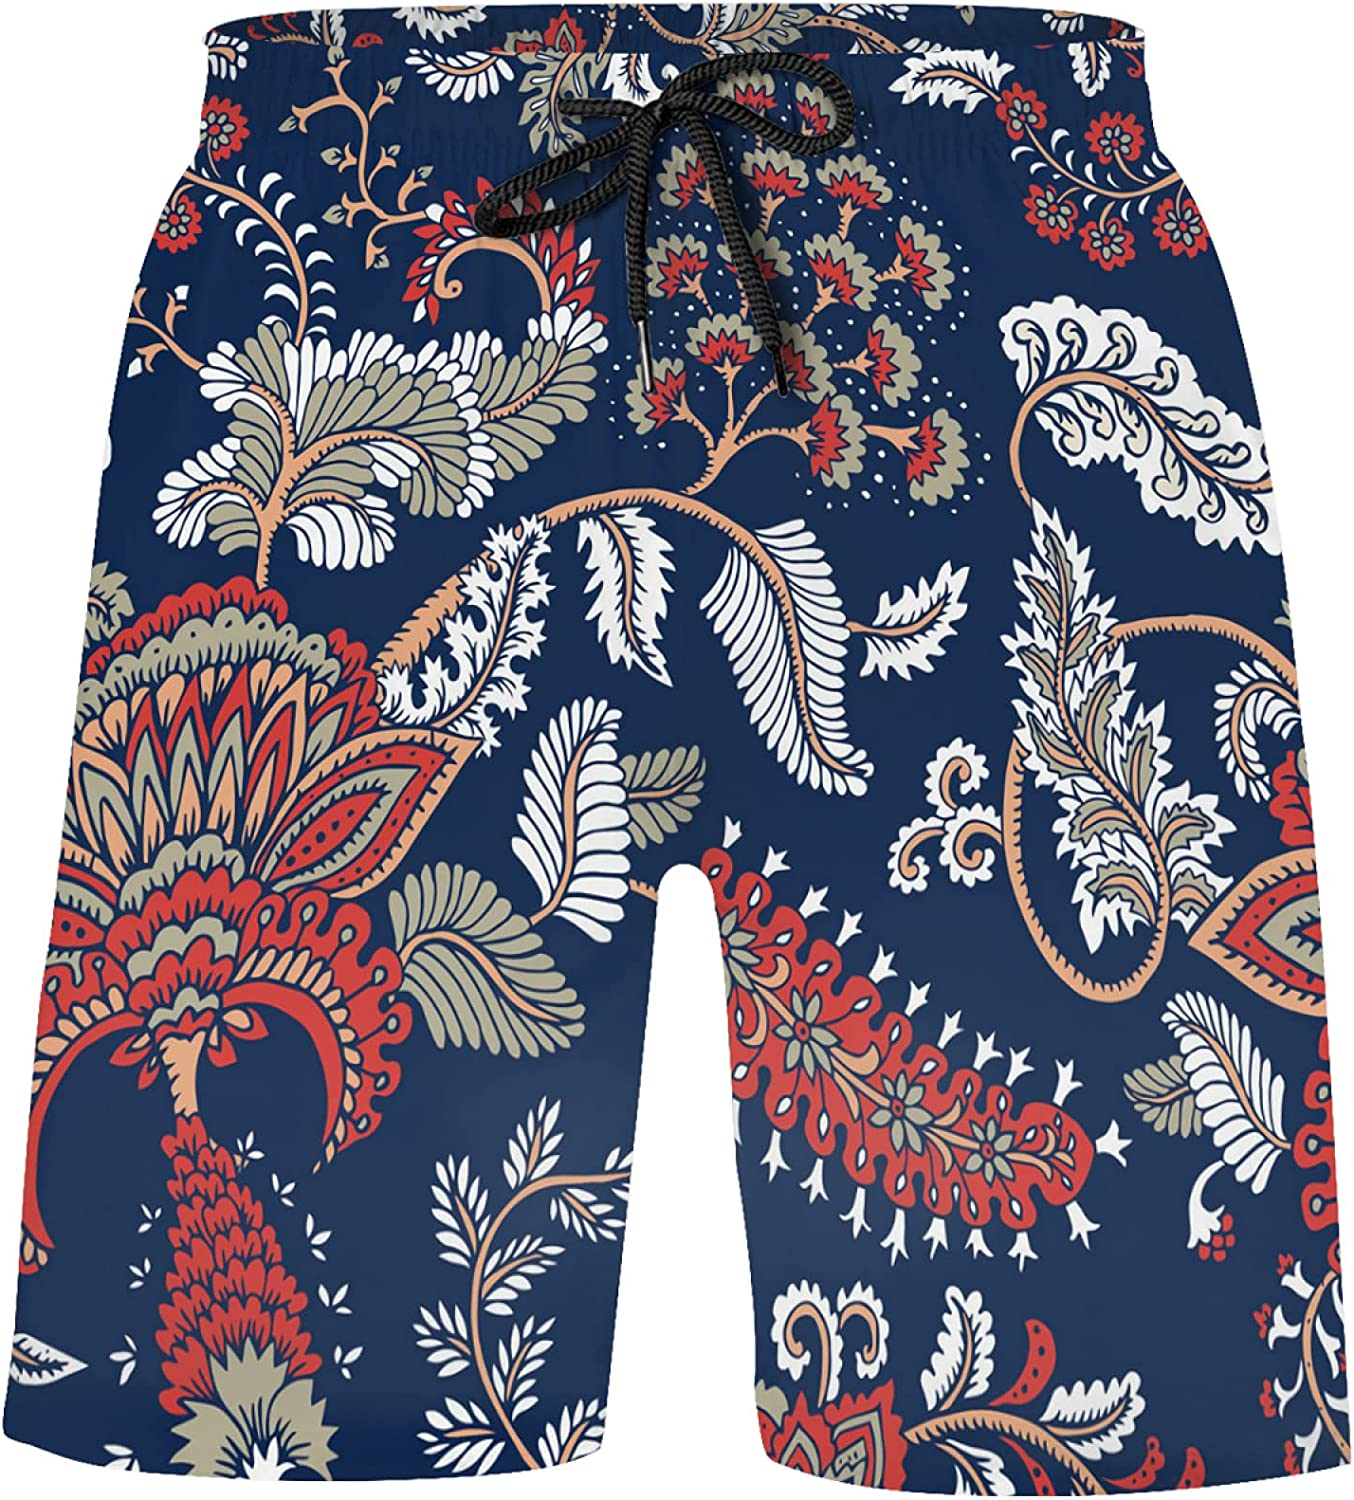 Fantasy Flowers Paisley Floral On Blue Bathing Suits Athletic Shorts Swim Trunks for